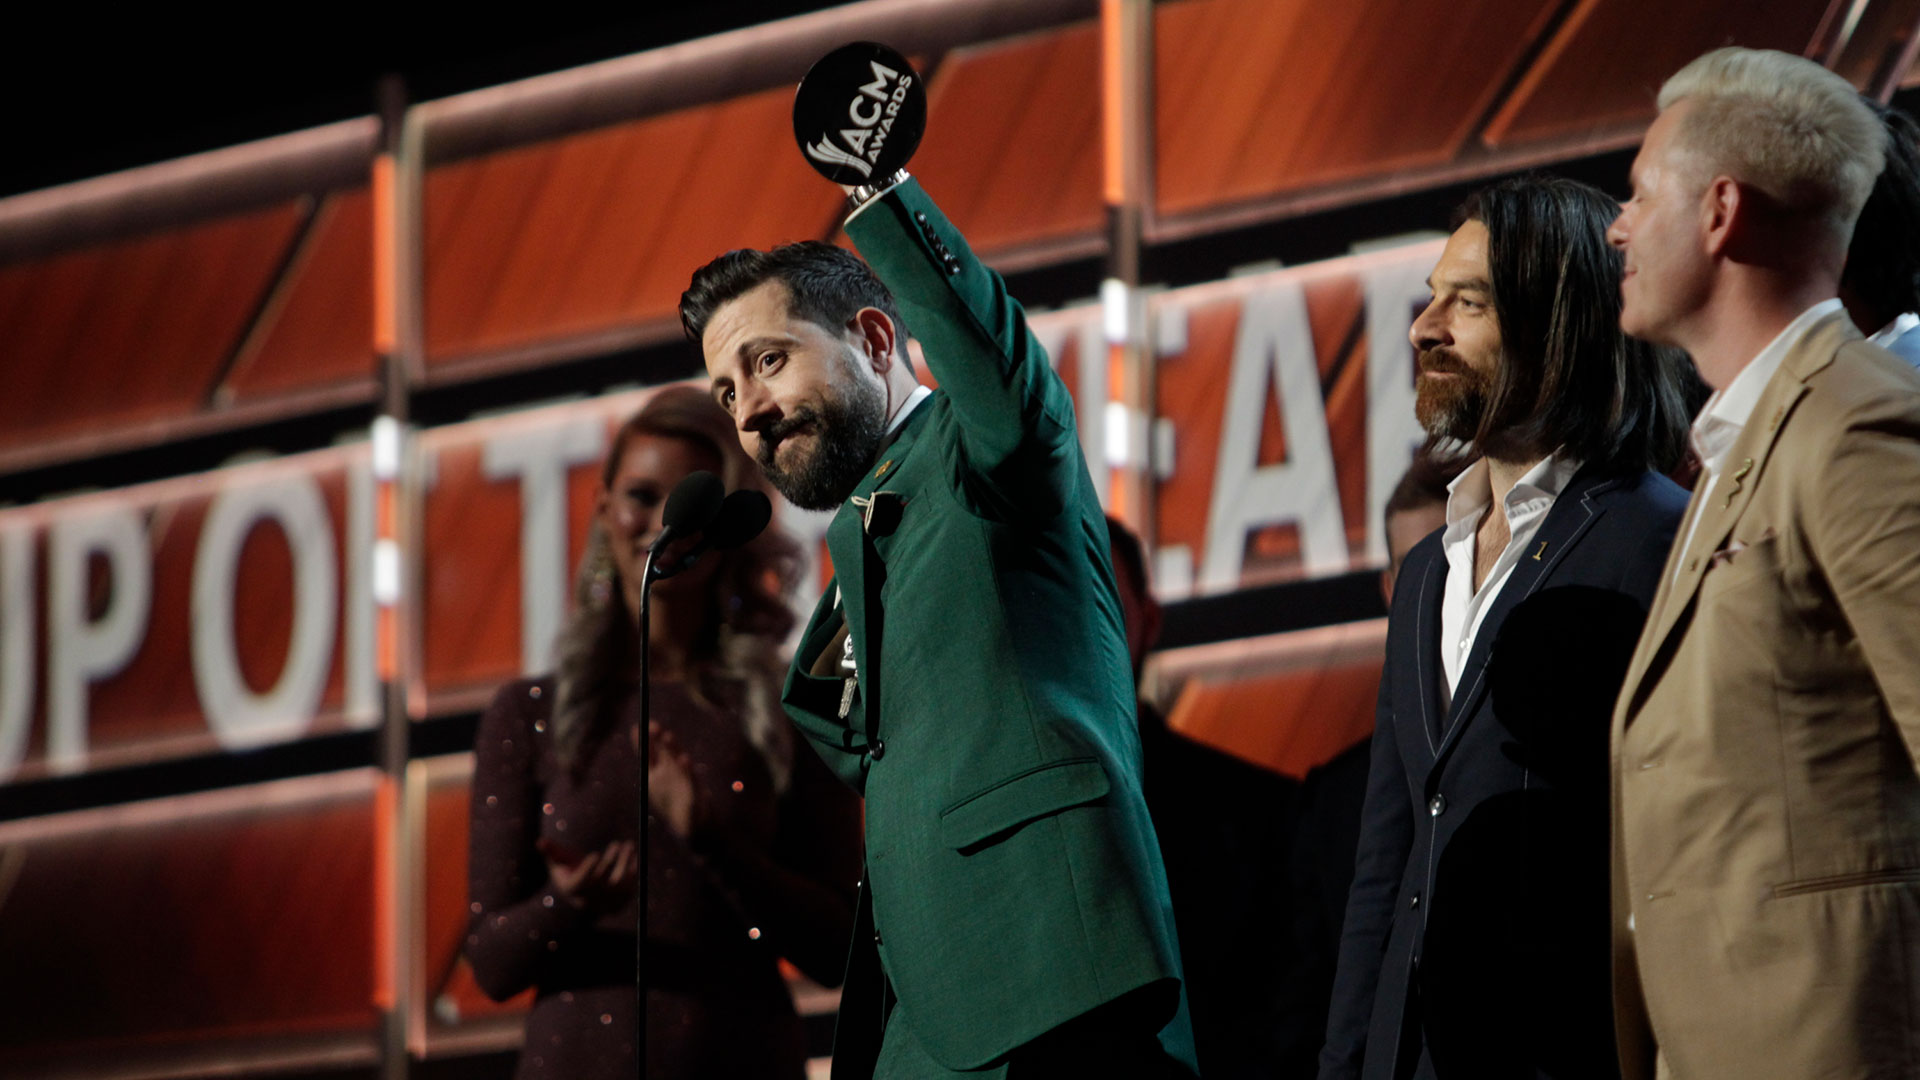 Old Dominion win Vocal Group of the Year at the 53rd ACM Awards.